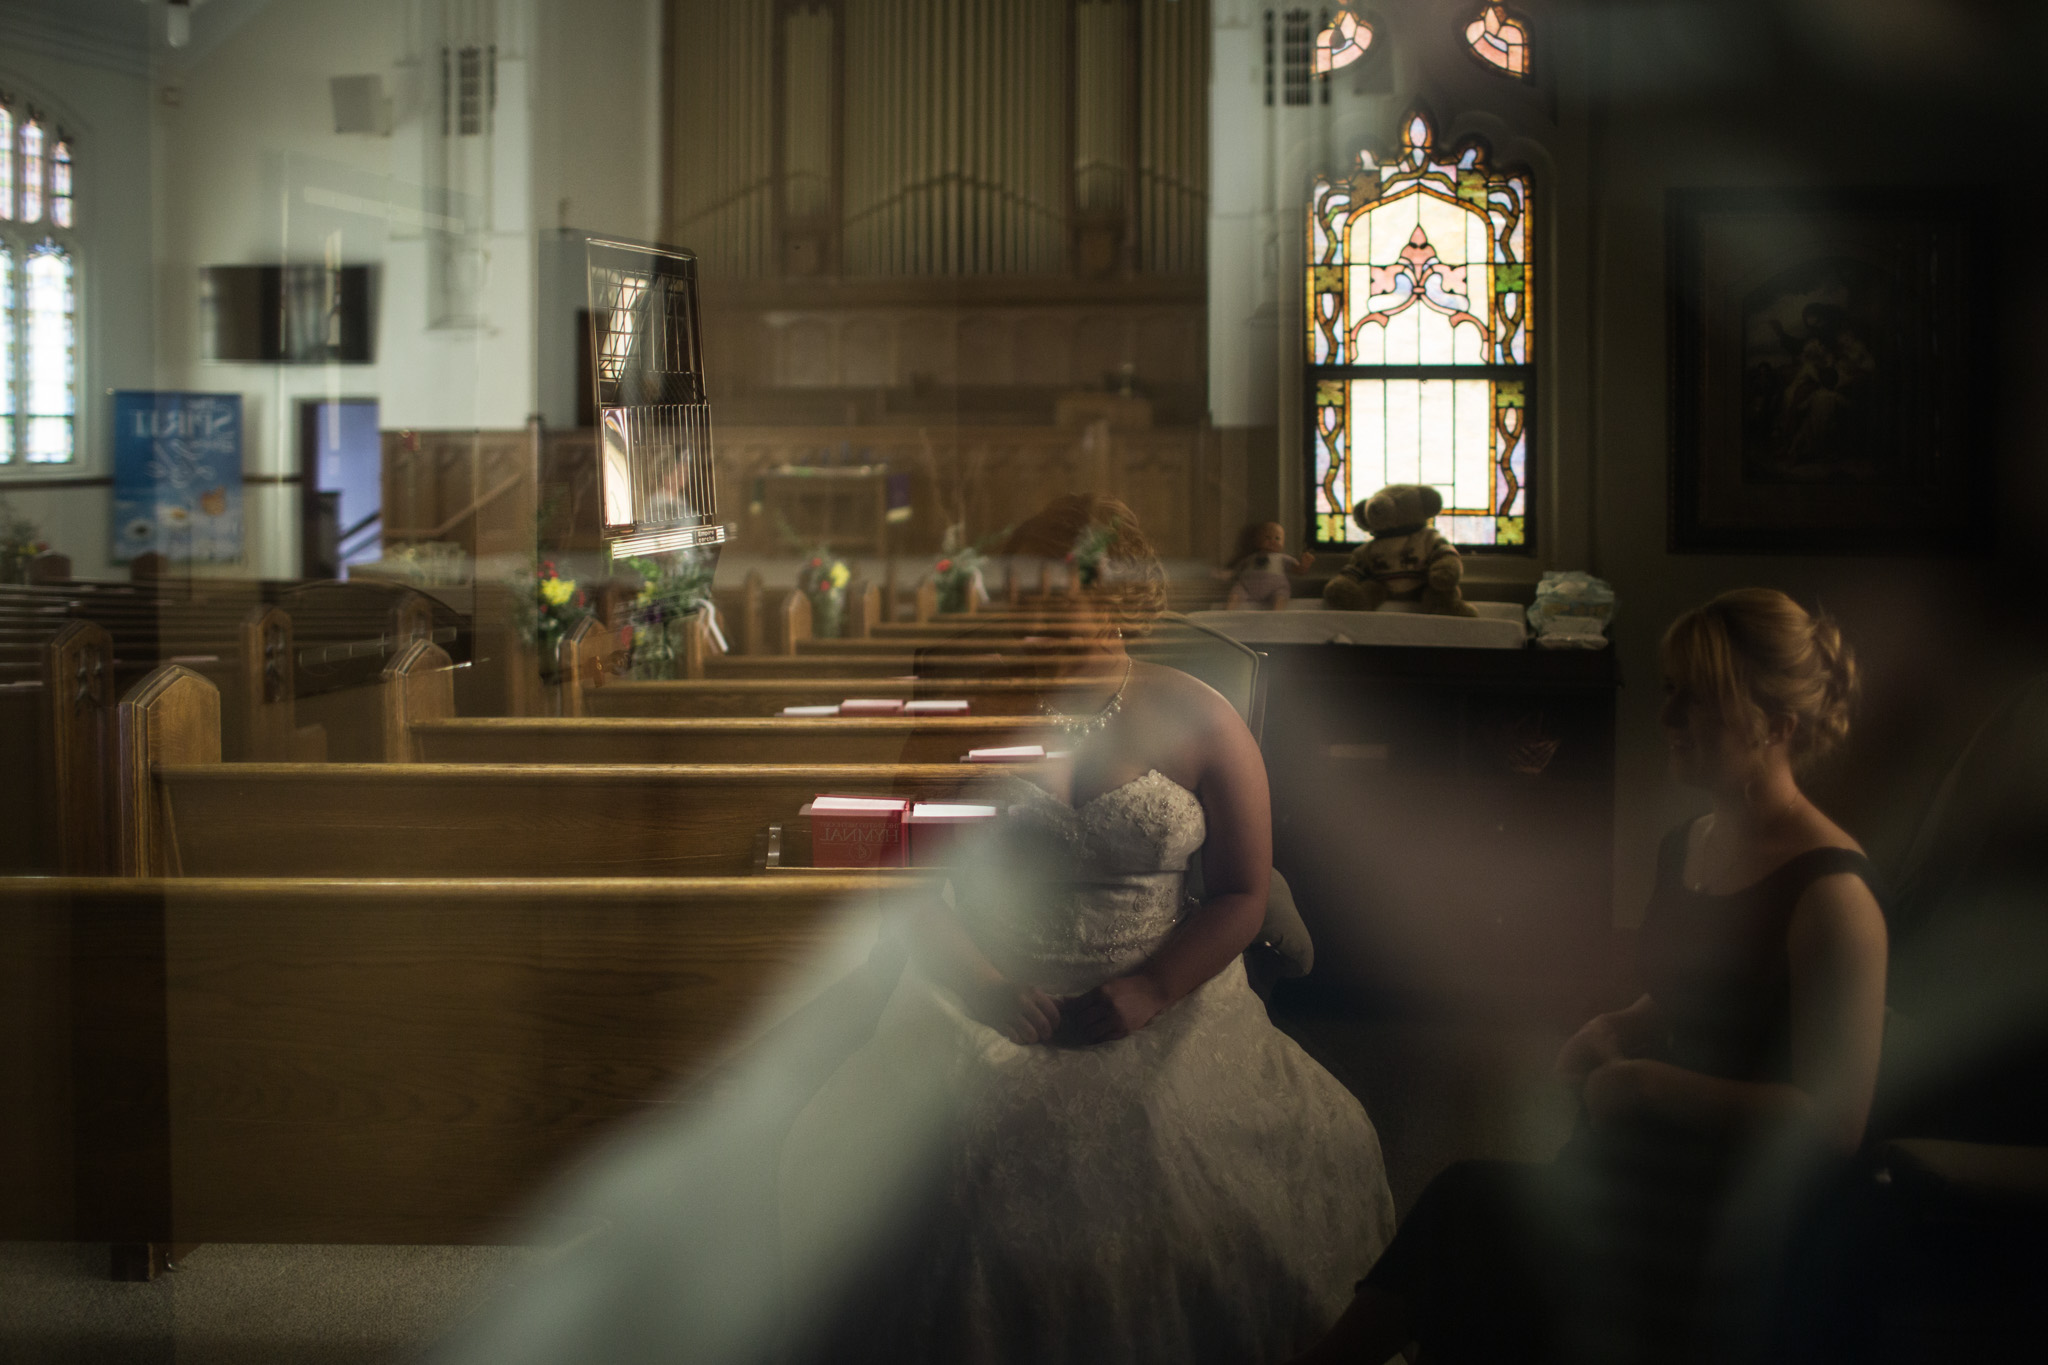 Zibell Spring Wedding, Bride and Groom, Powerful, Connected, Exploration, Laura Duggleby Photography -74.JPG